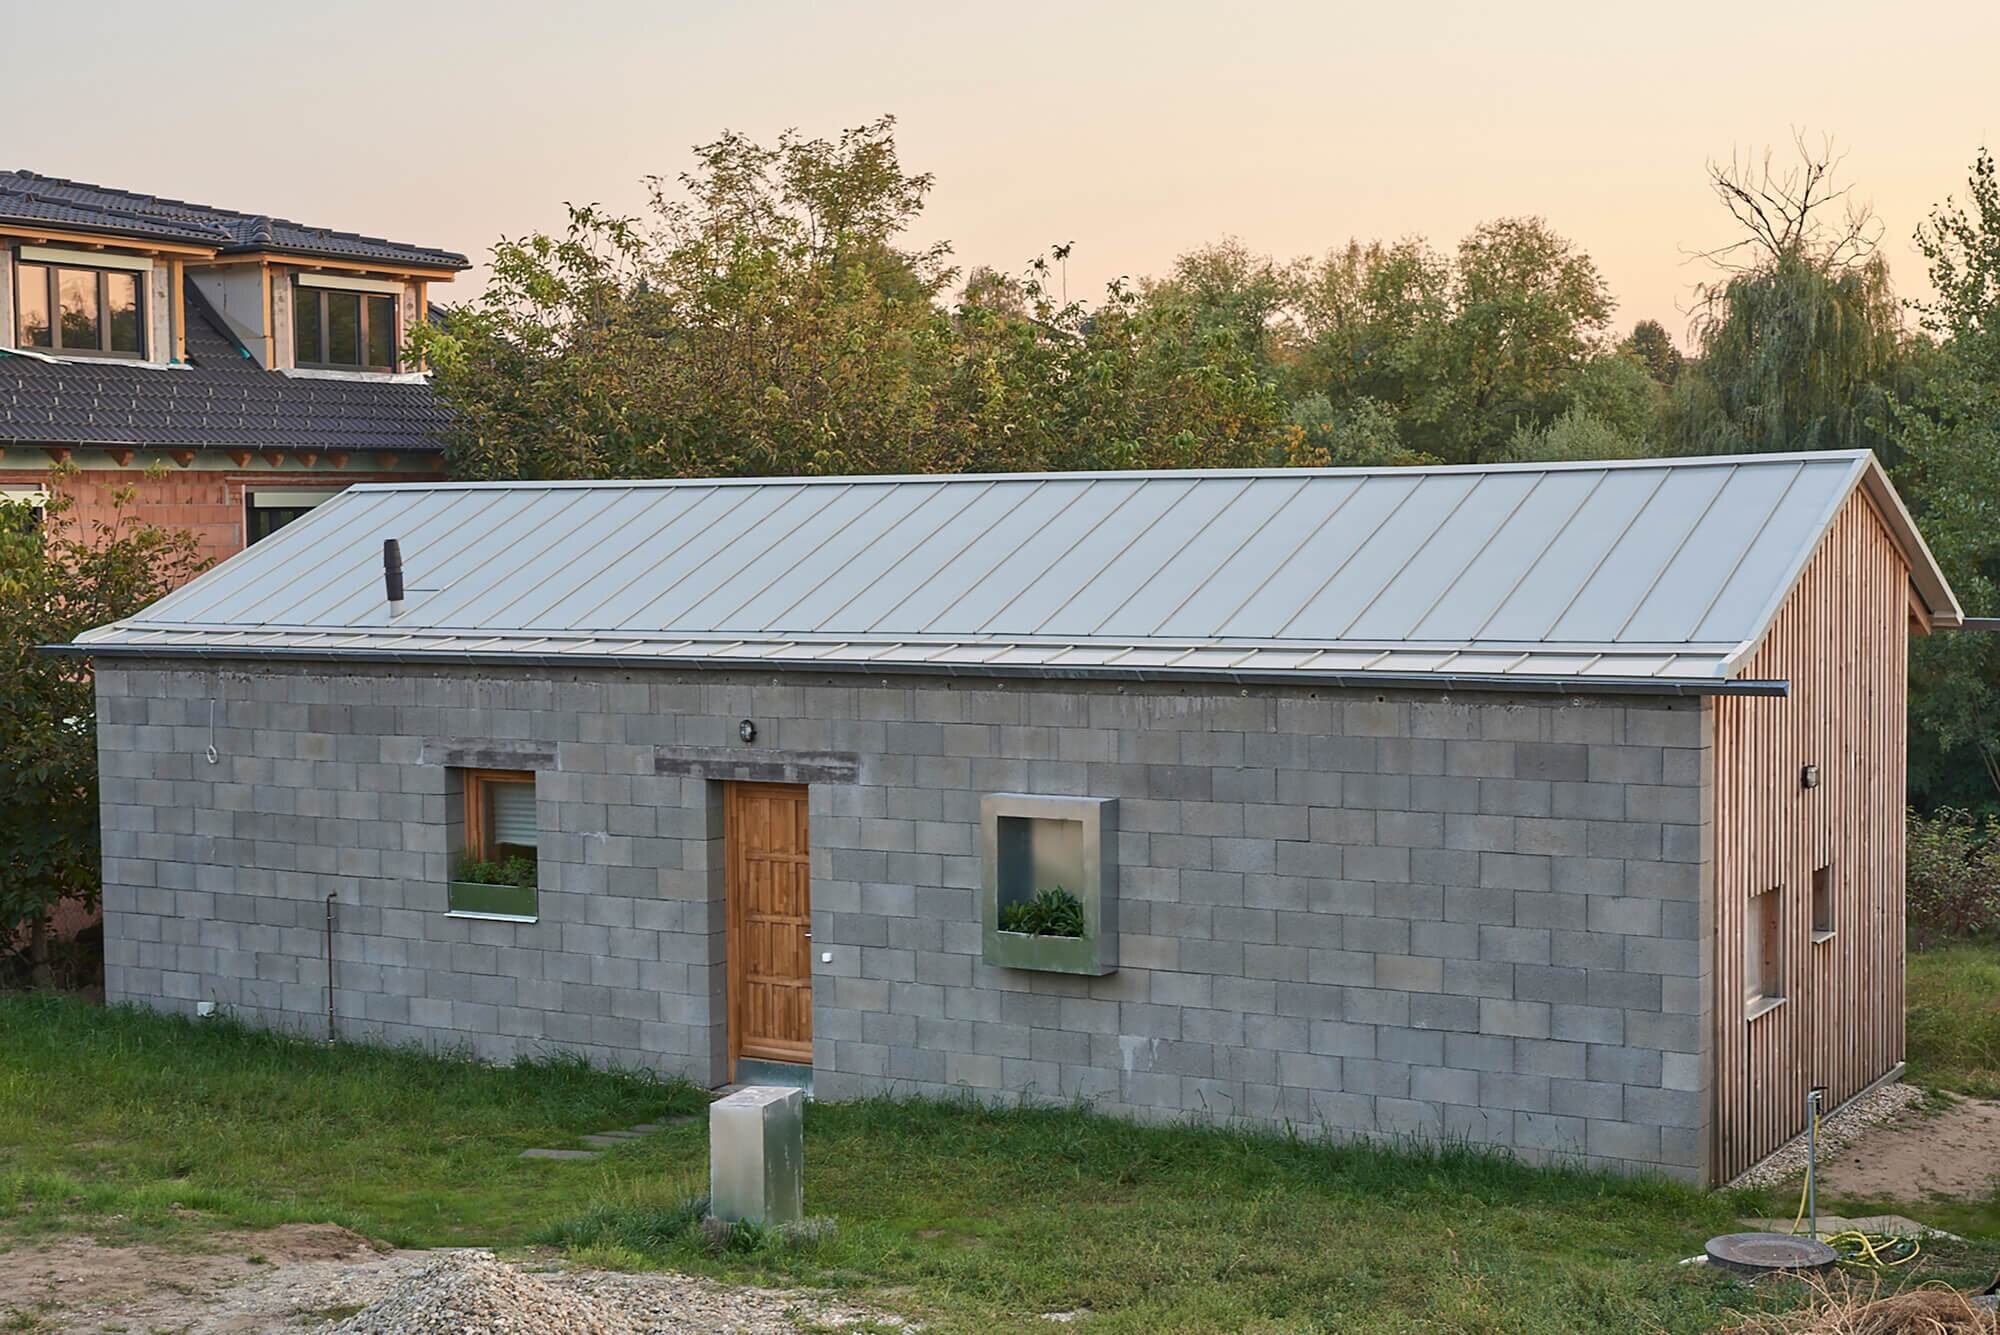 House-for-a-Young-Family-Architecture-Uncomfortable-Workshop-Hungary-5